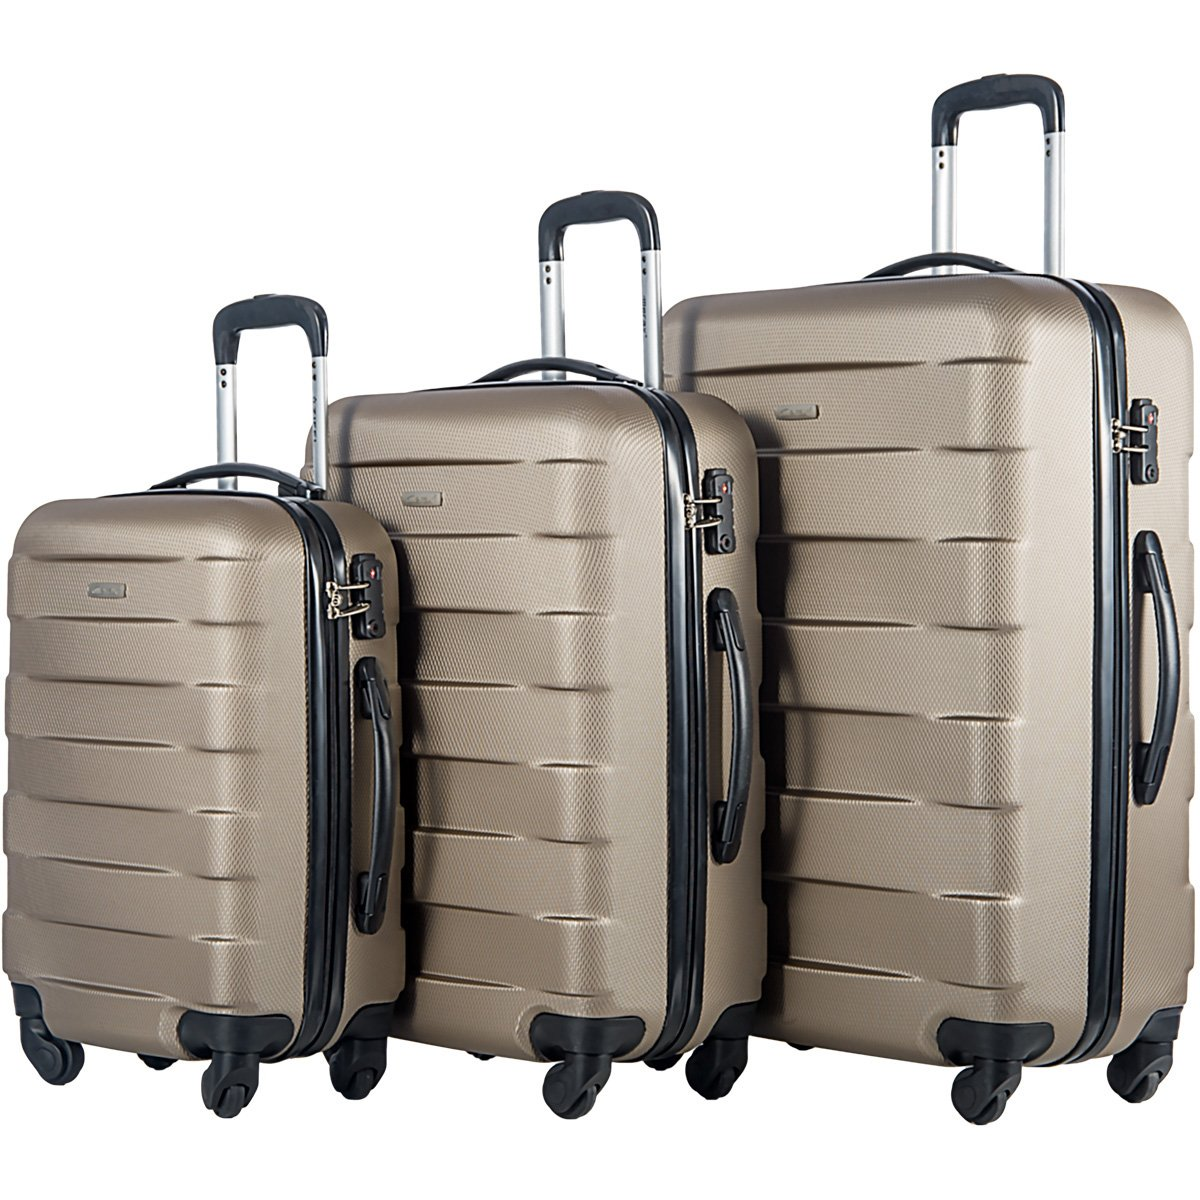 Merax MT Imagine TSA Luggage Set 3 Piece Spinner Suitcase by Merax